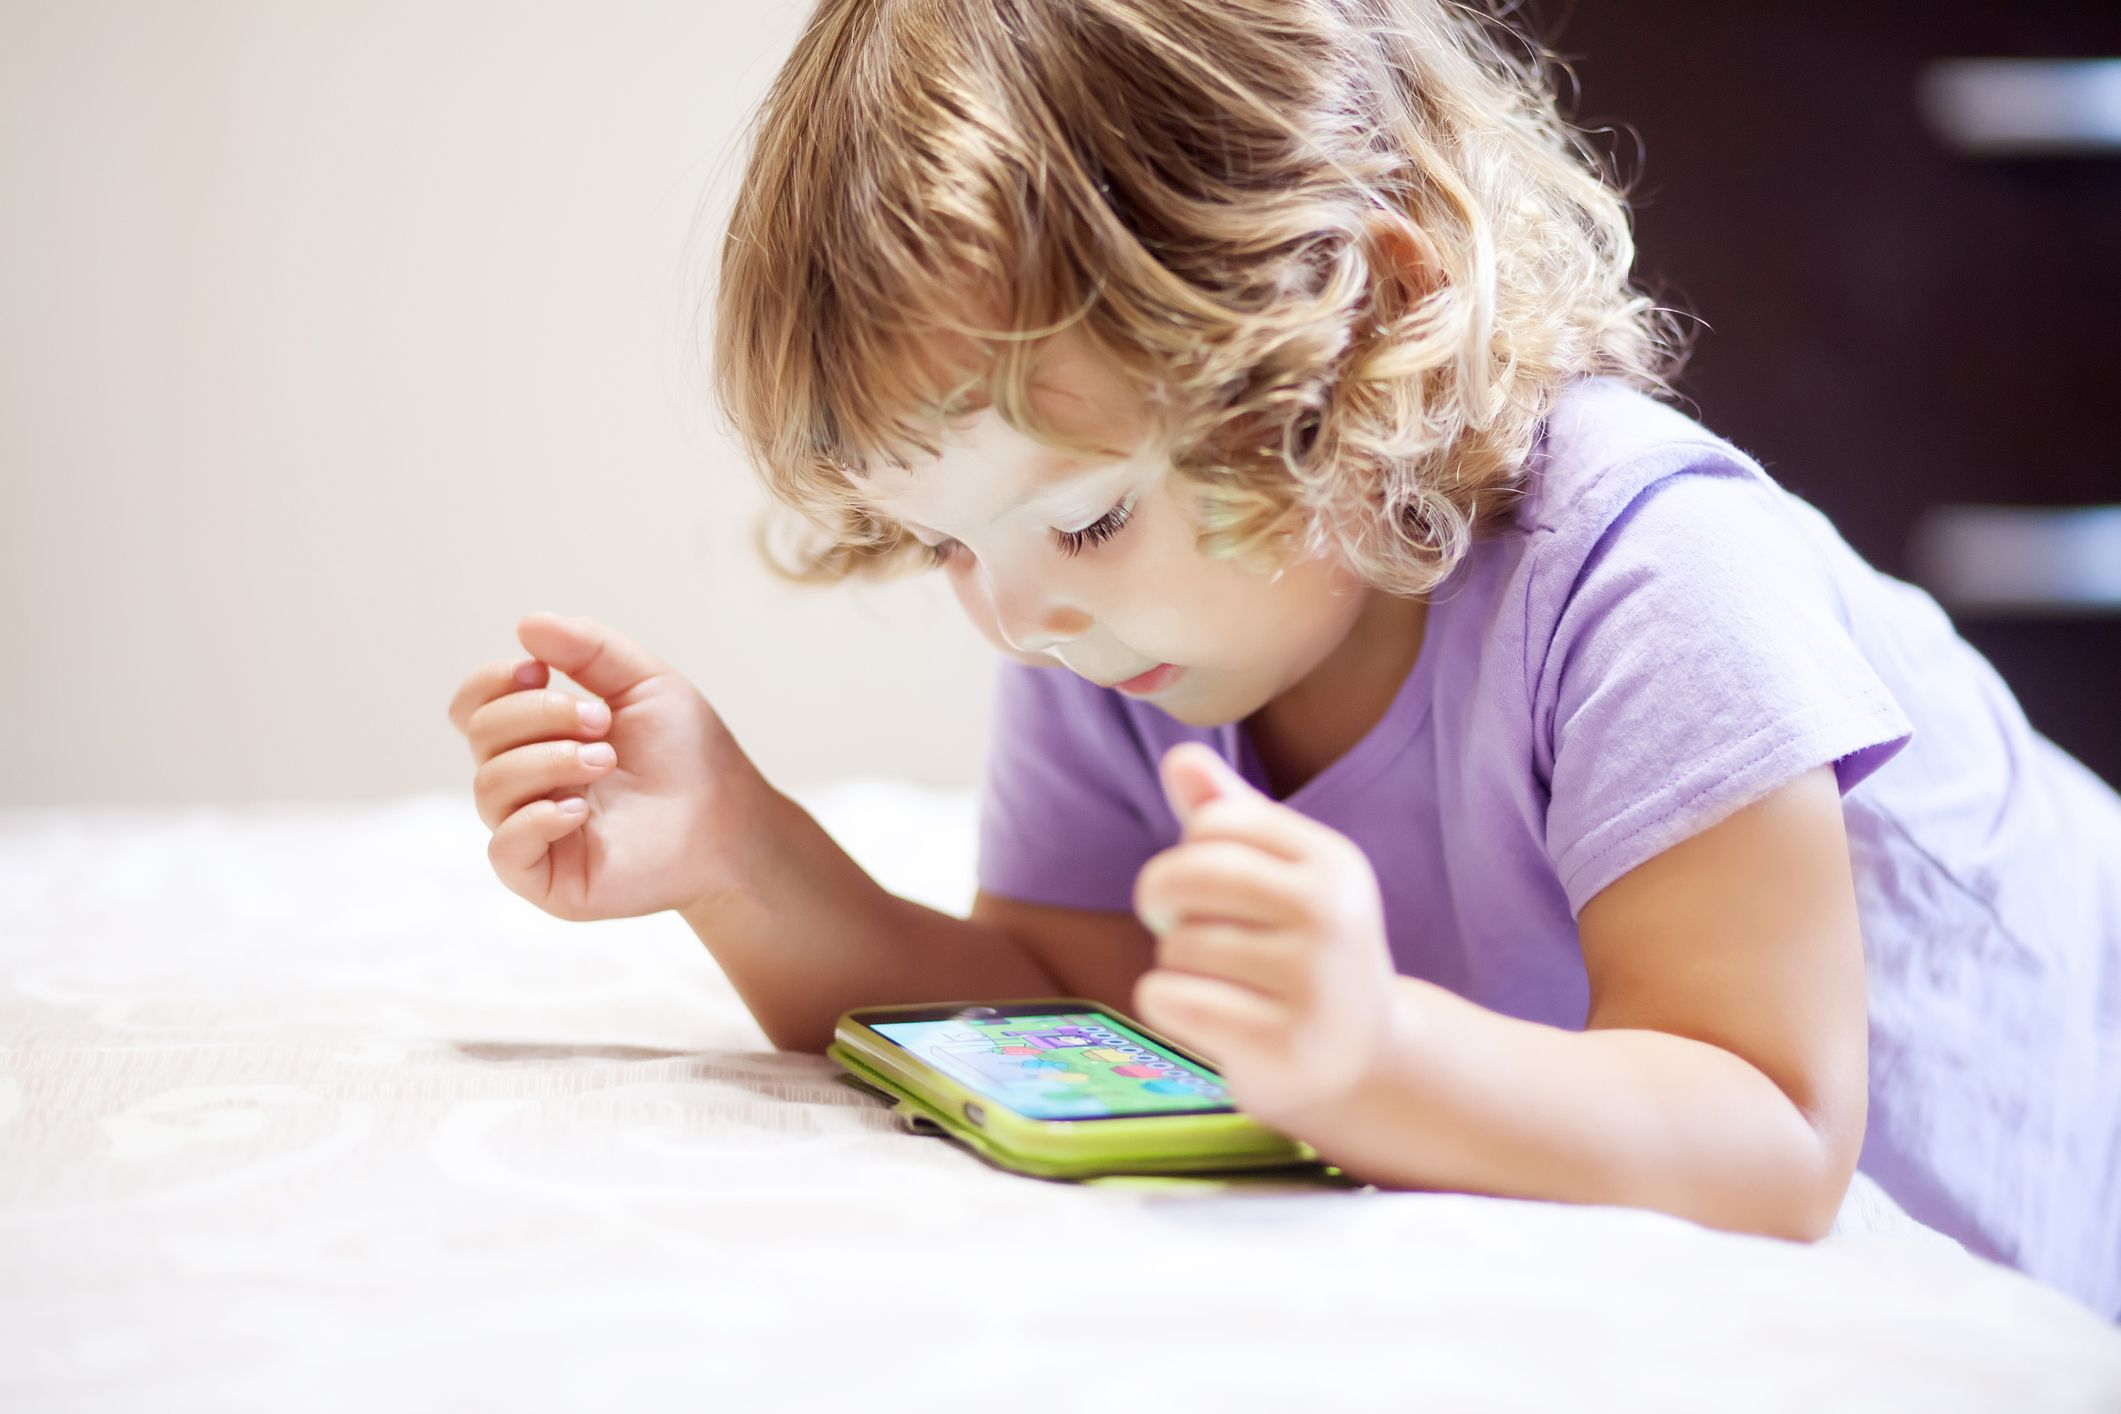 Children who use screens too much have different brain ...